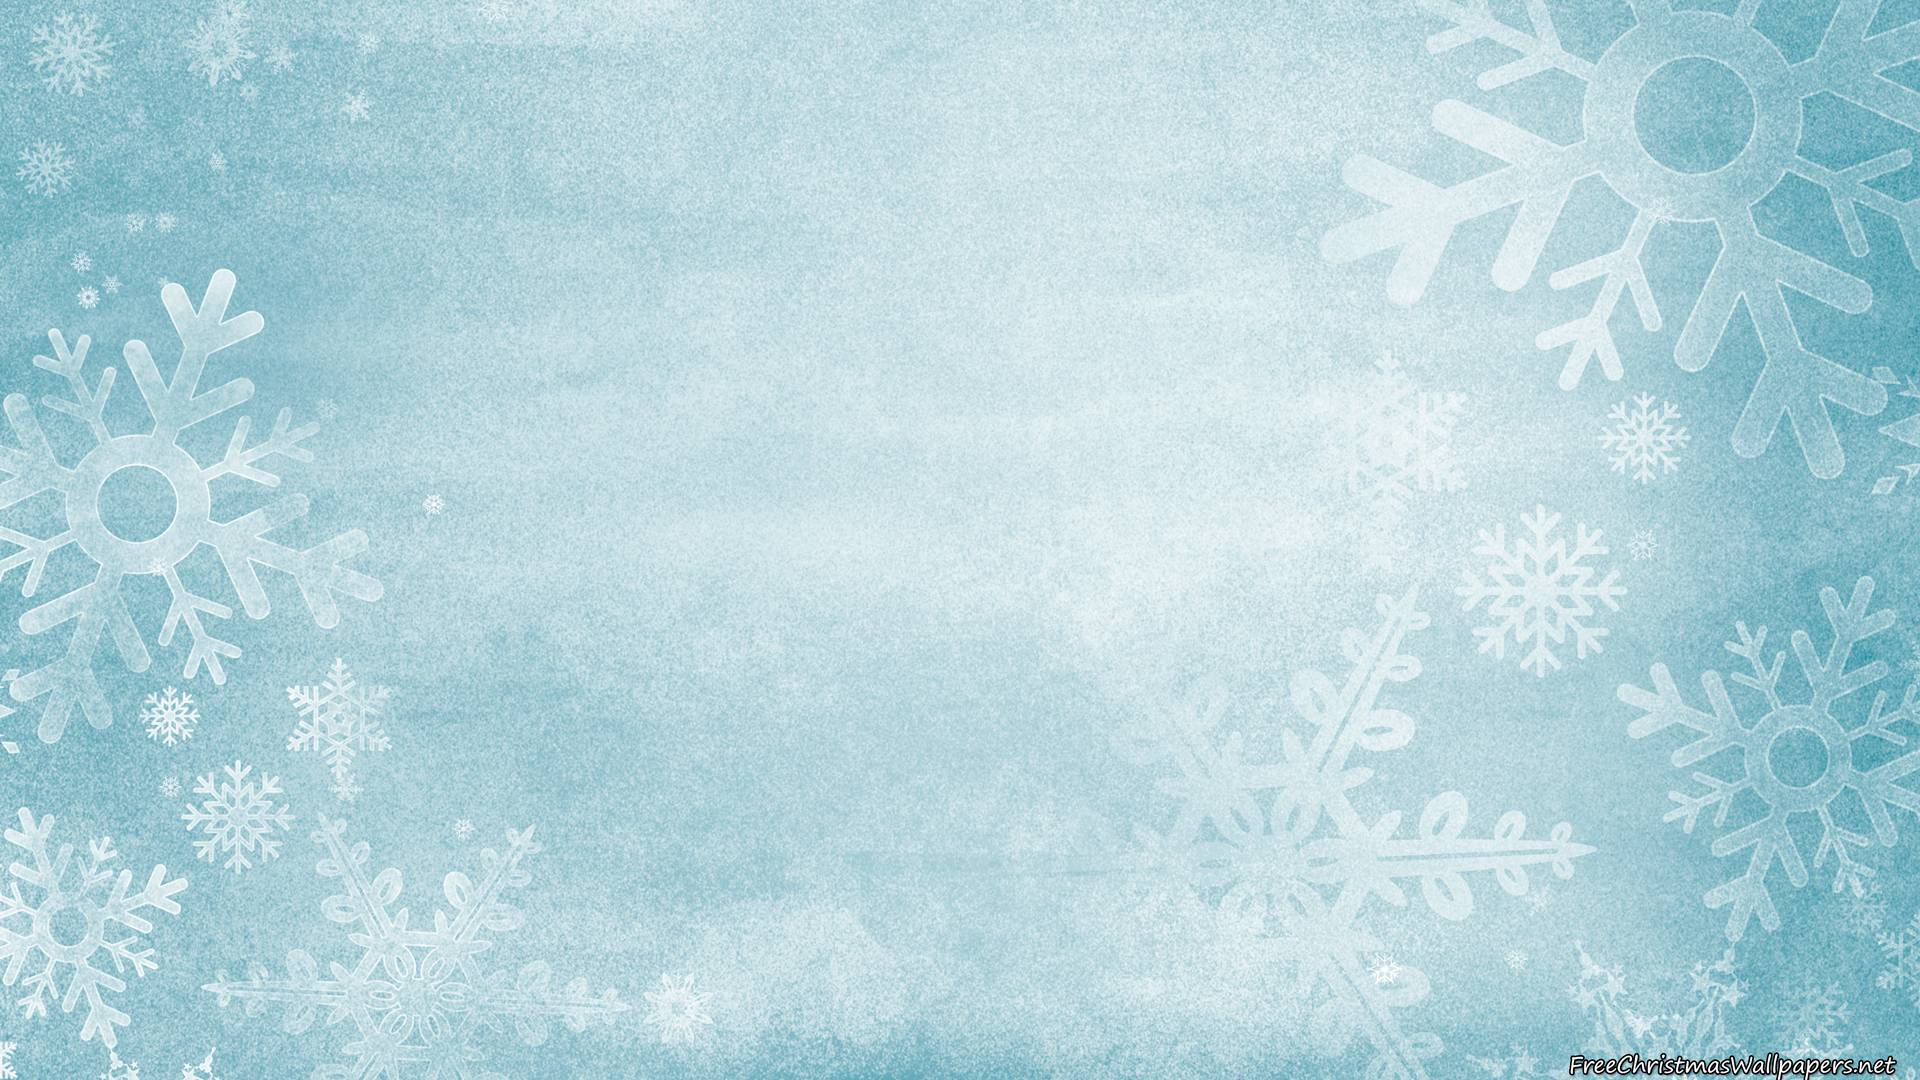 Christmas Backgrounds Image - Wallpaper Cave